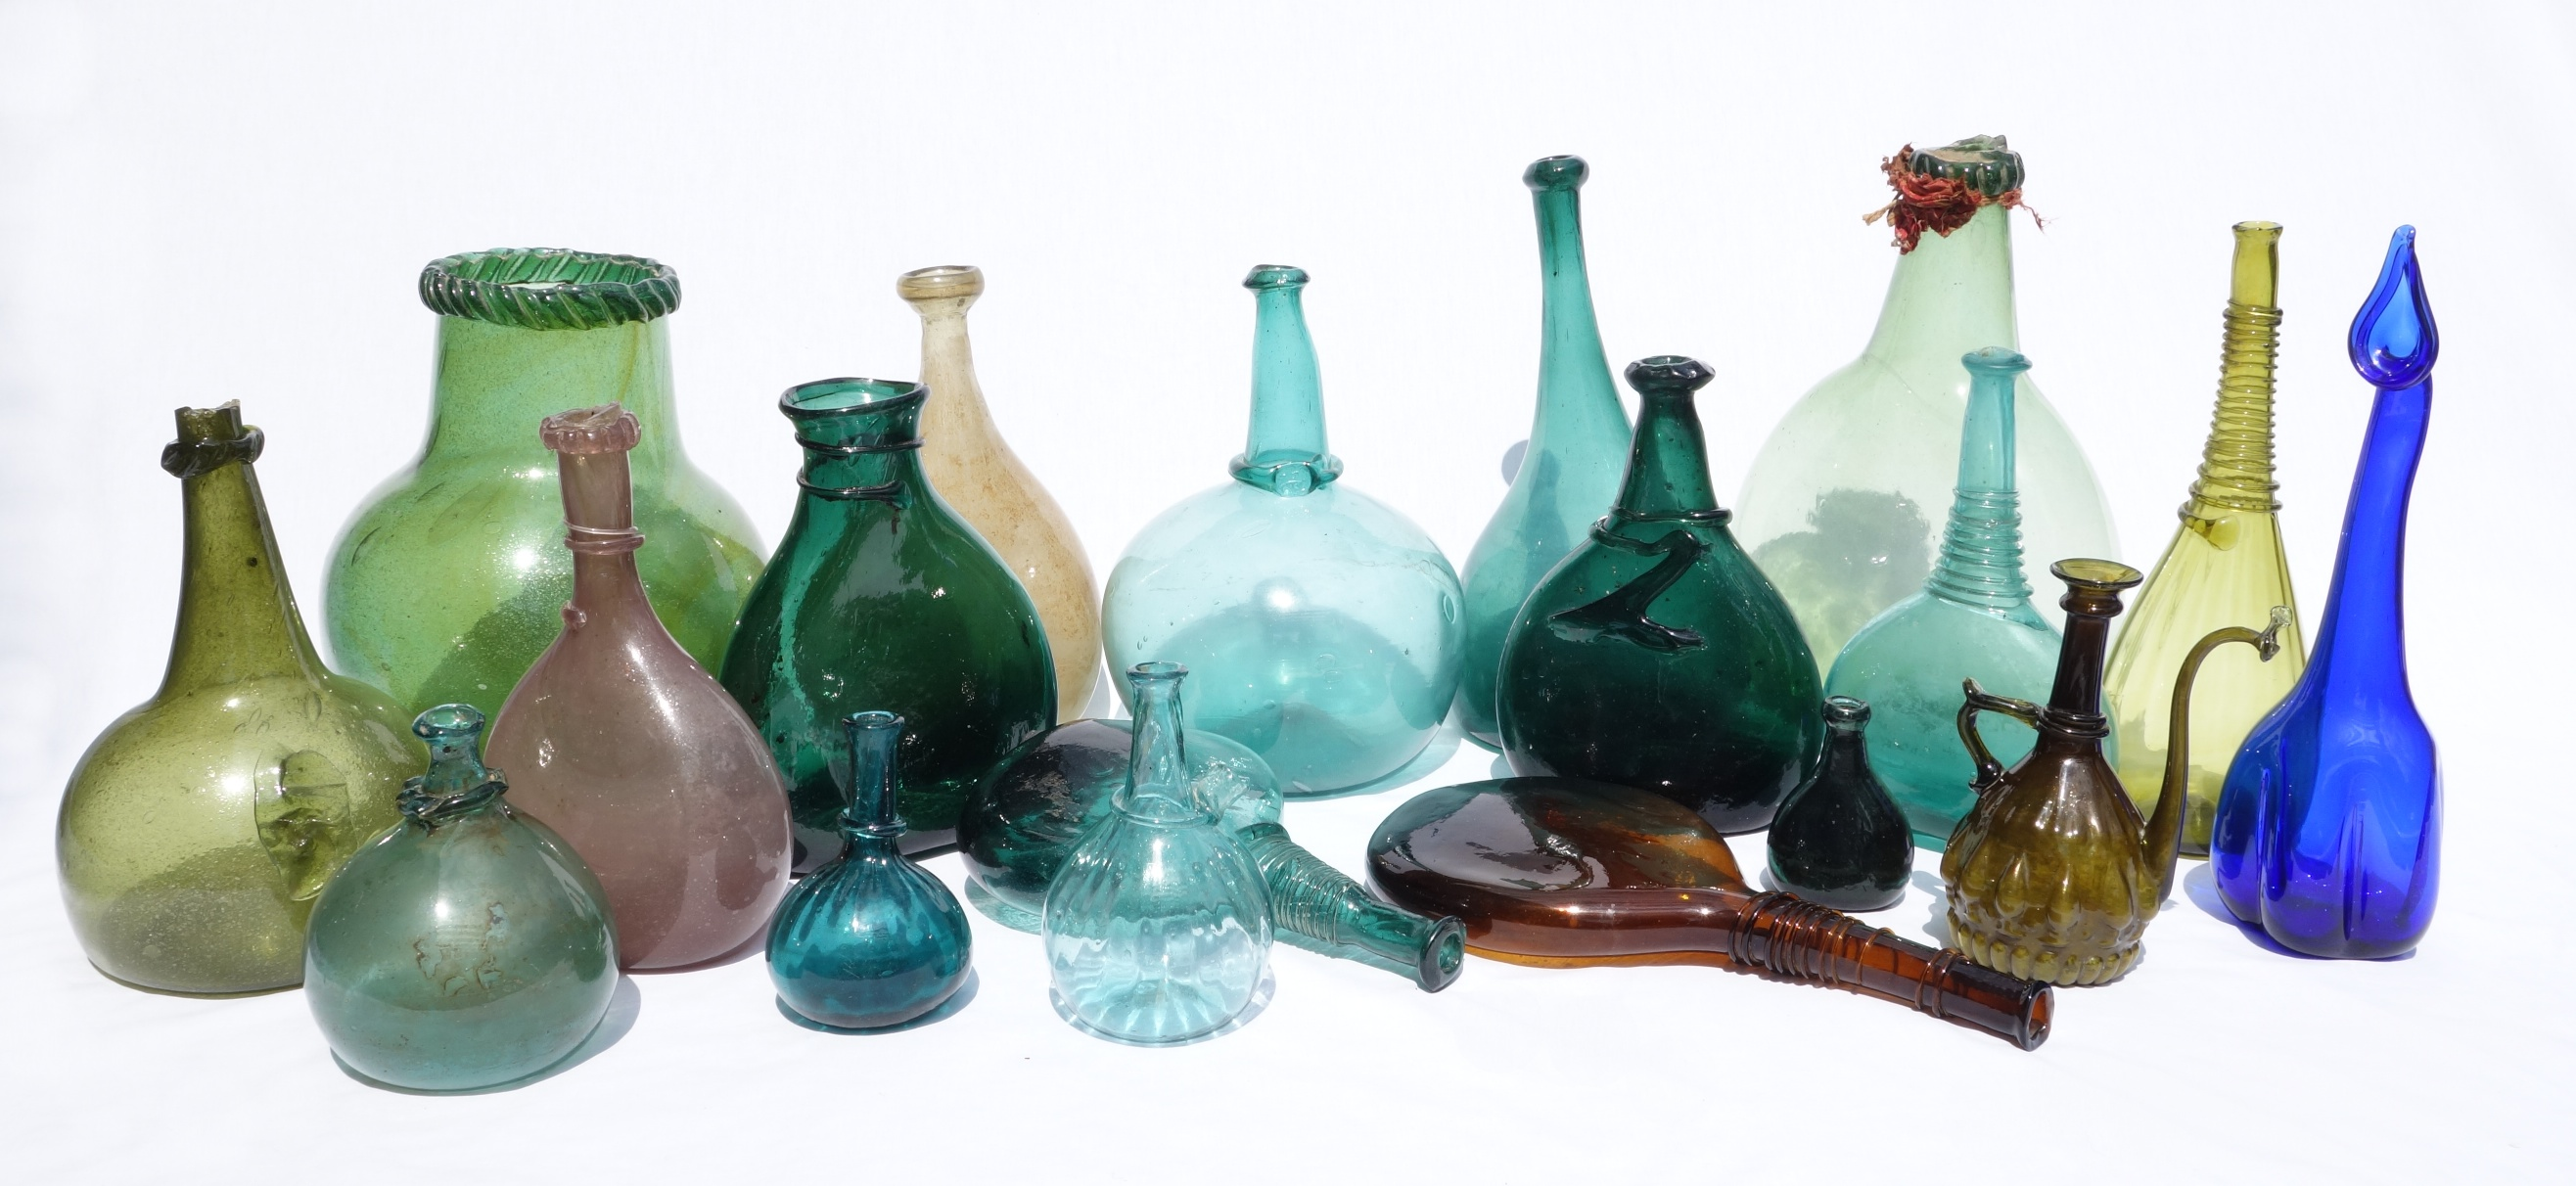 PERSIAN GLASS & SADDLEFLASKS